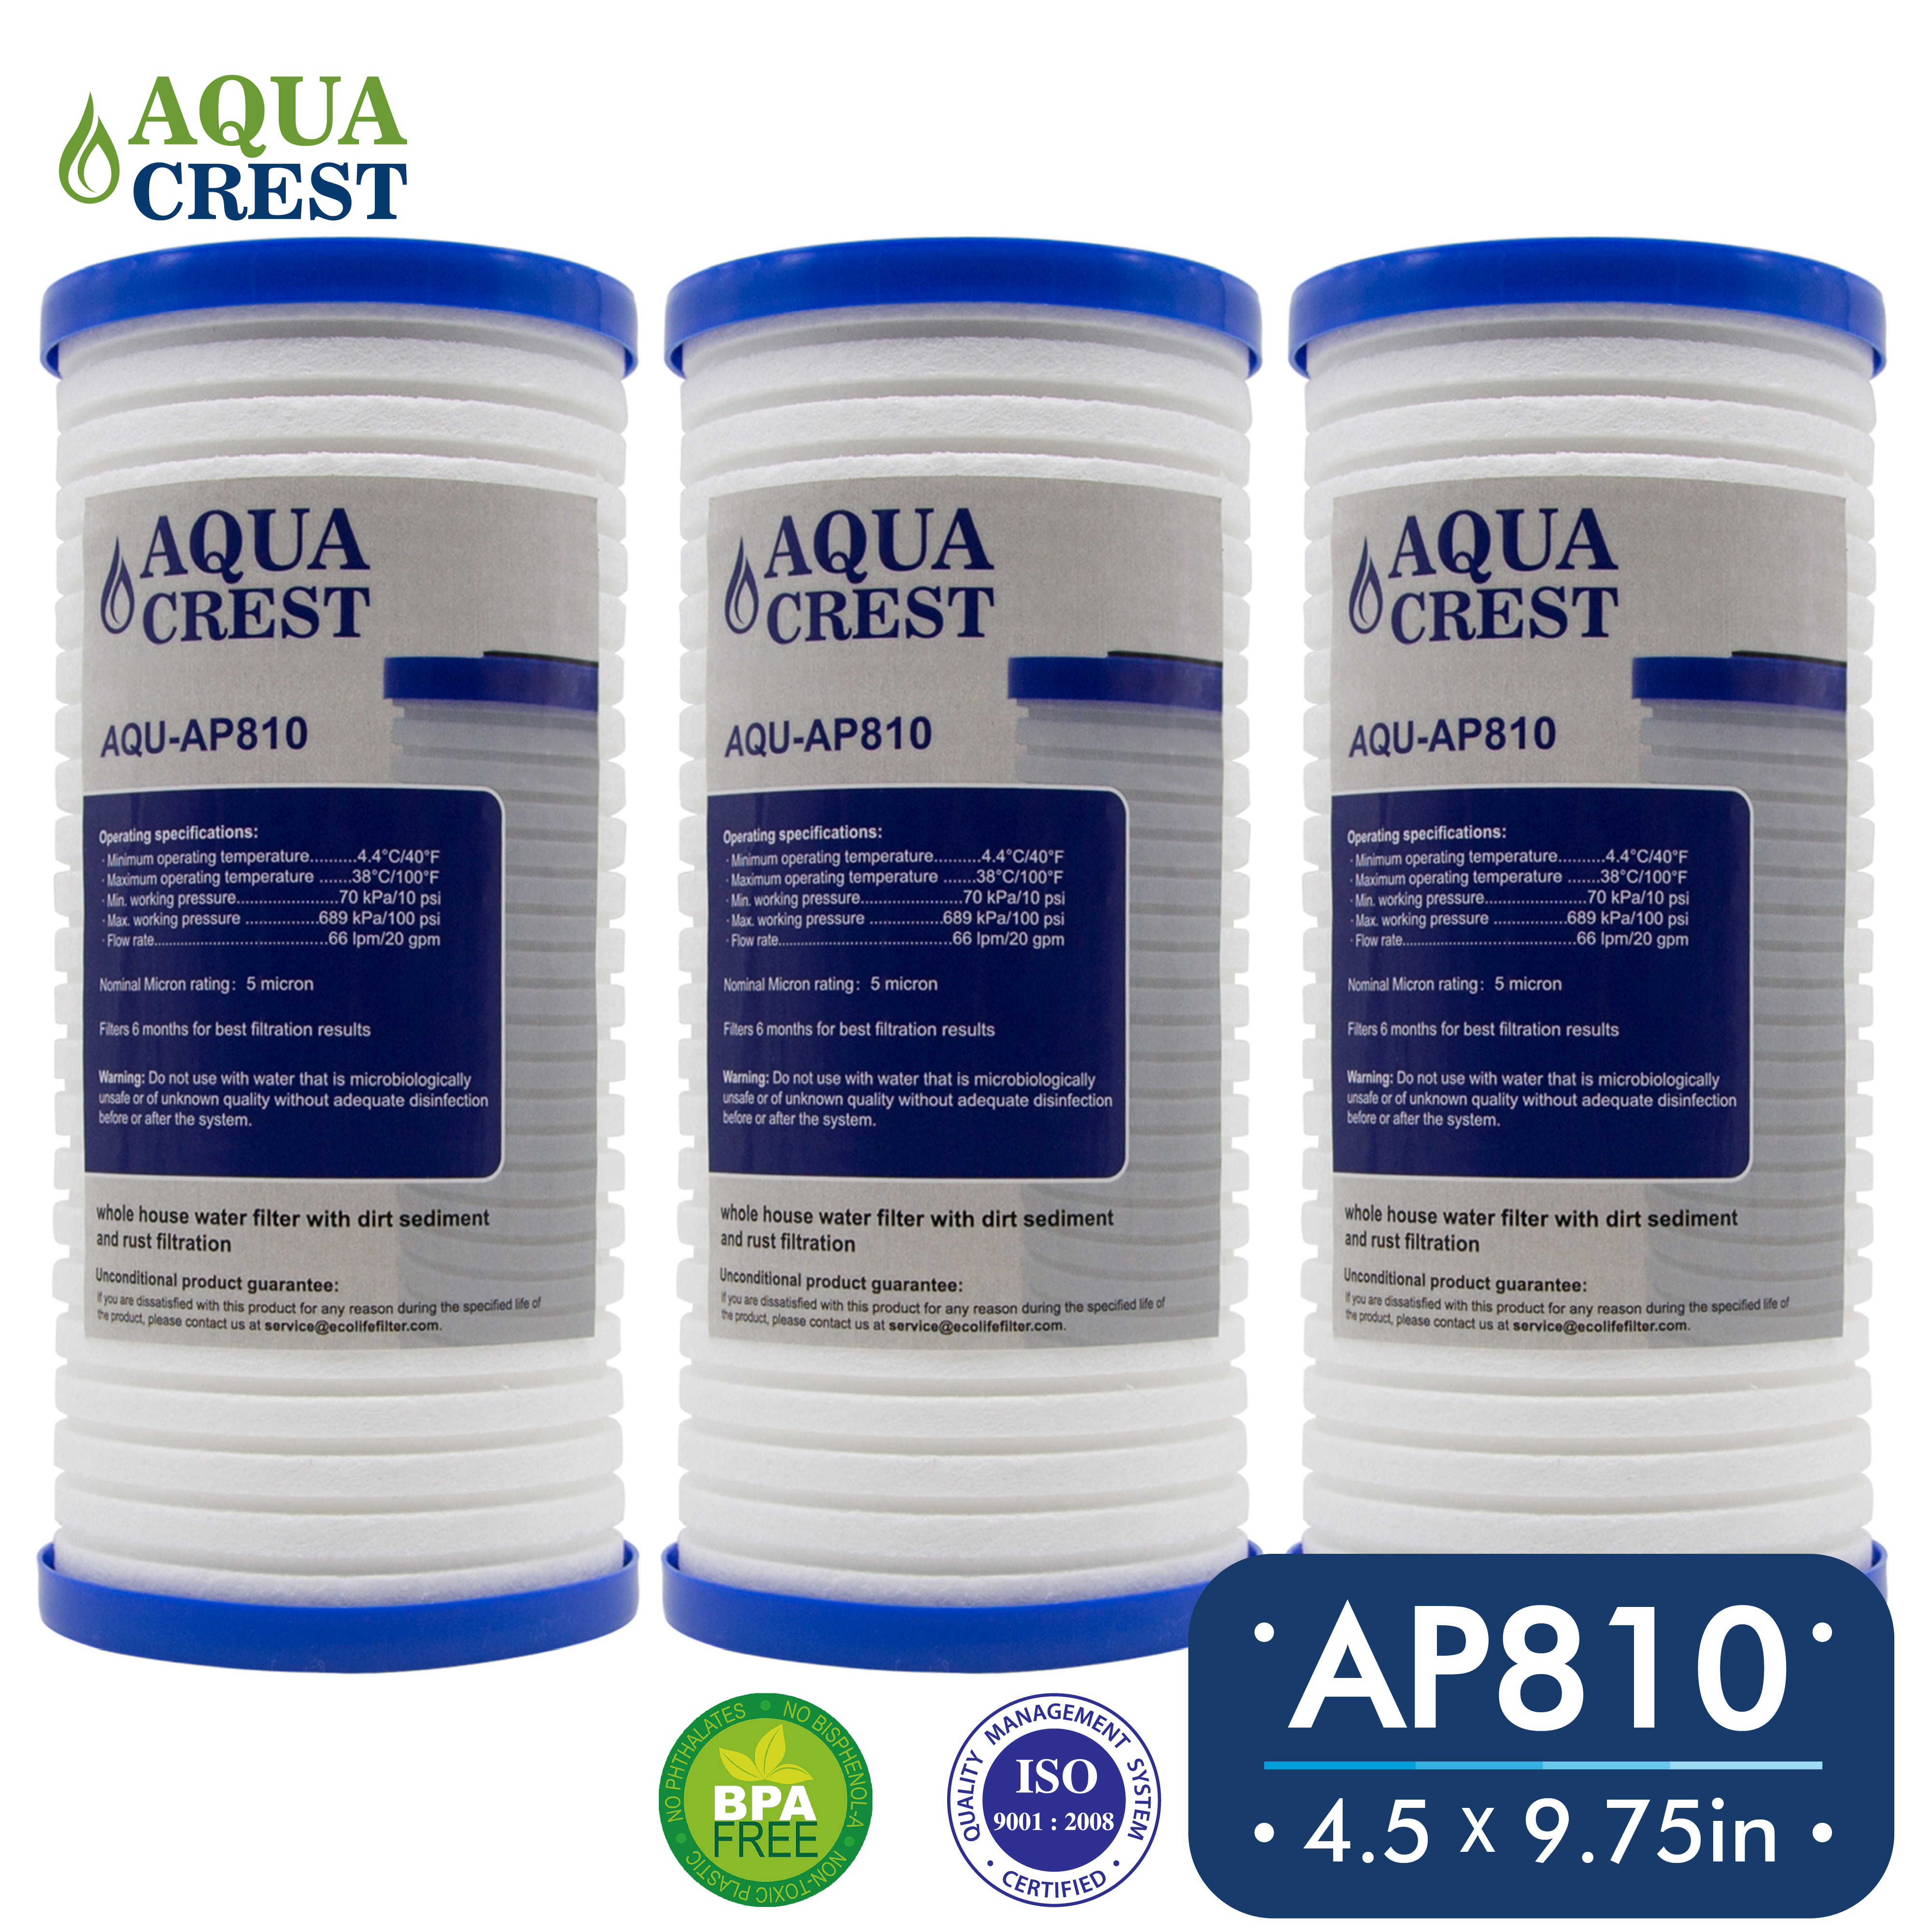 3 Pack AQUACREST AP810 Replacement for 3M Aqua-Pure AP810, Whirlpool WHKF-GD25BB Whole House Water Filter by Ecolife Technologies